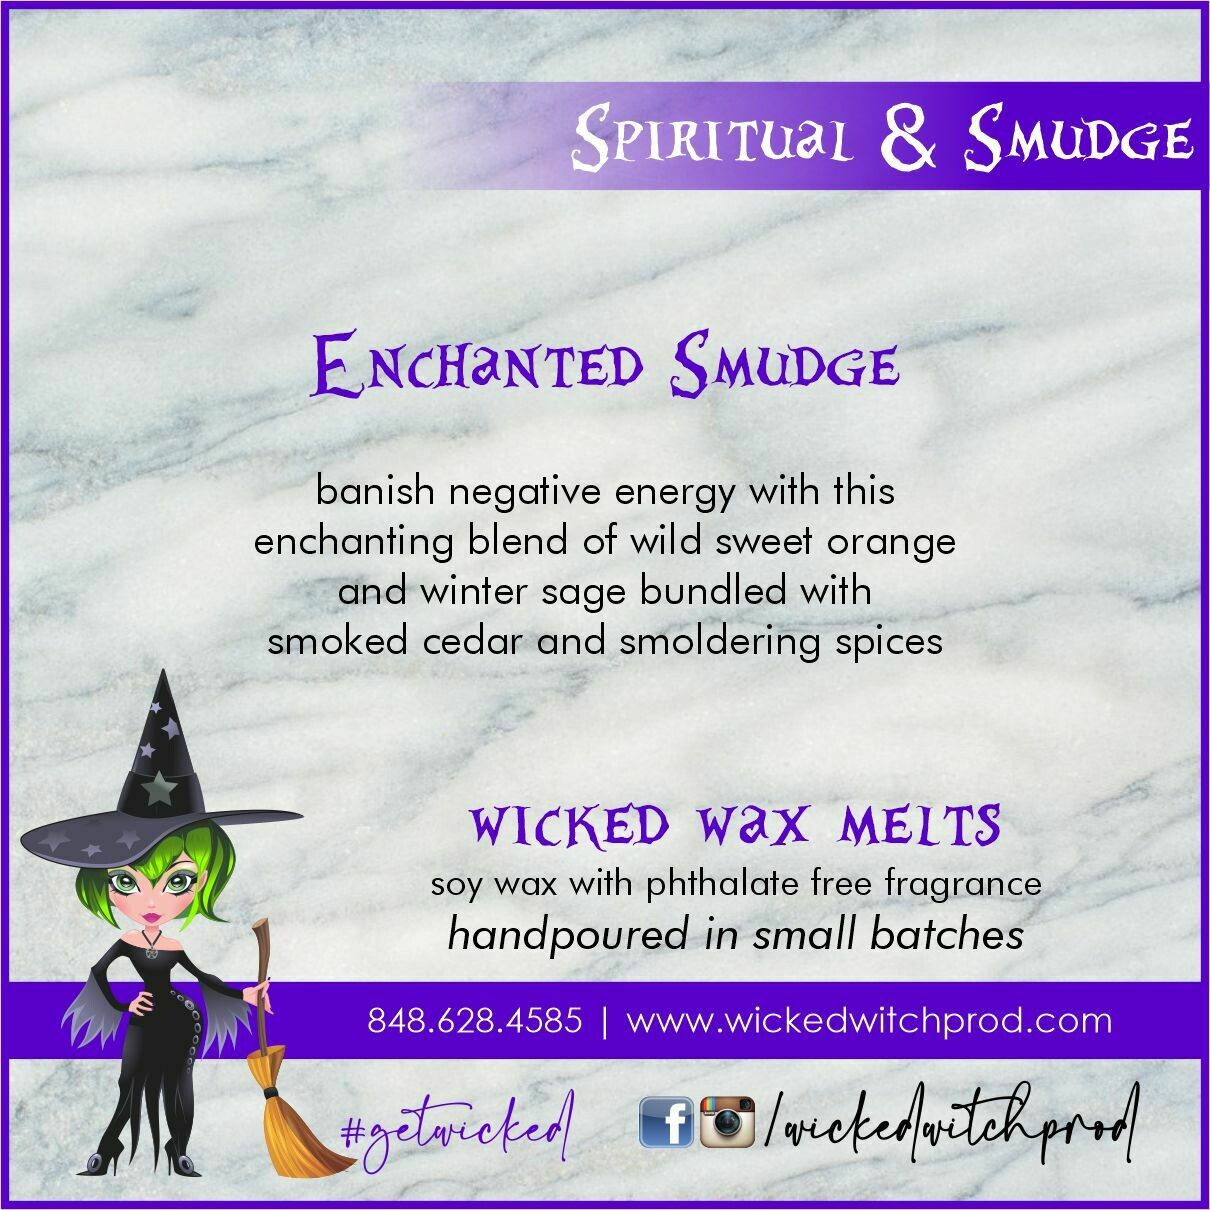 Enchanted Smudge Wicked Wax Melts